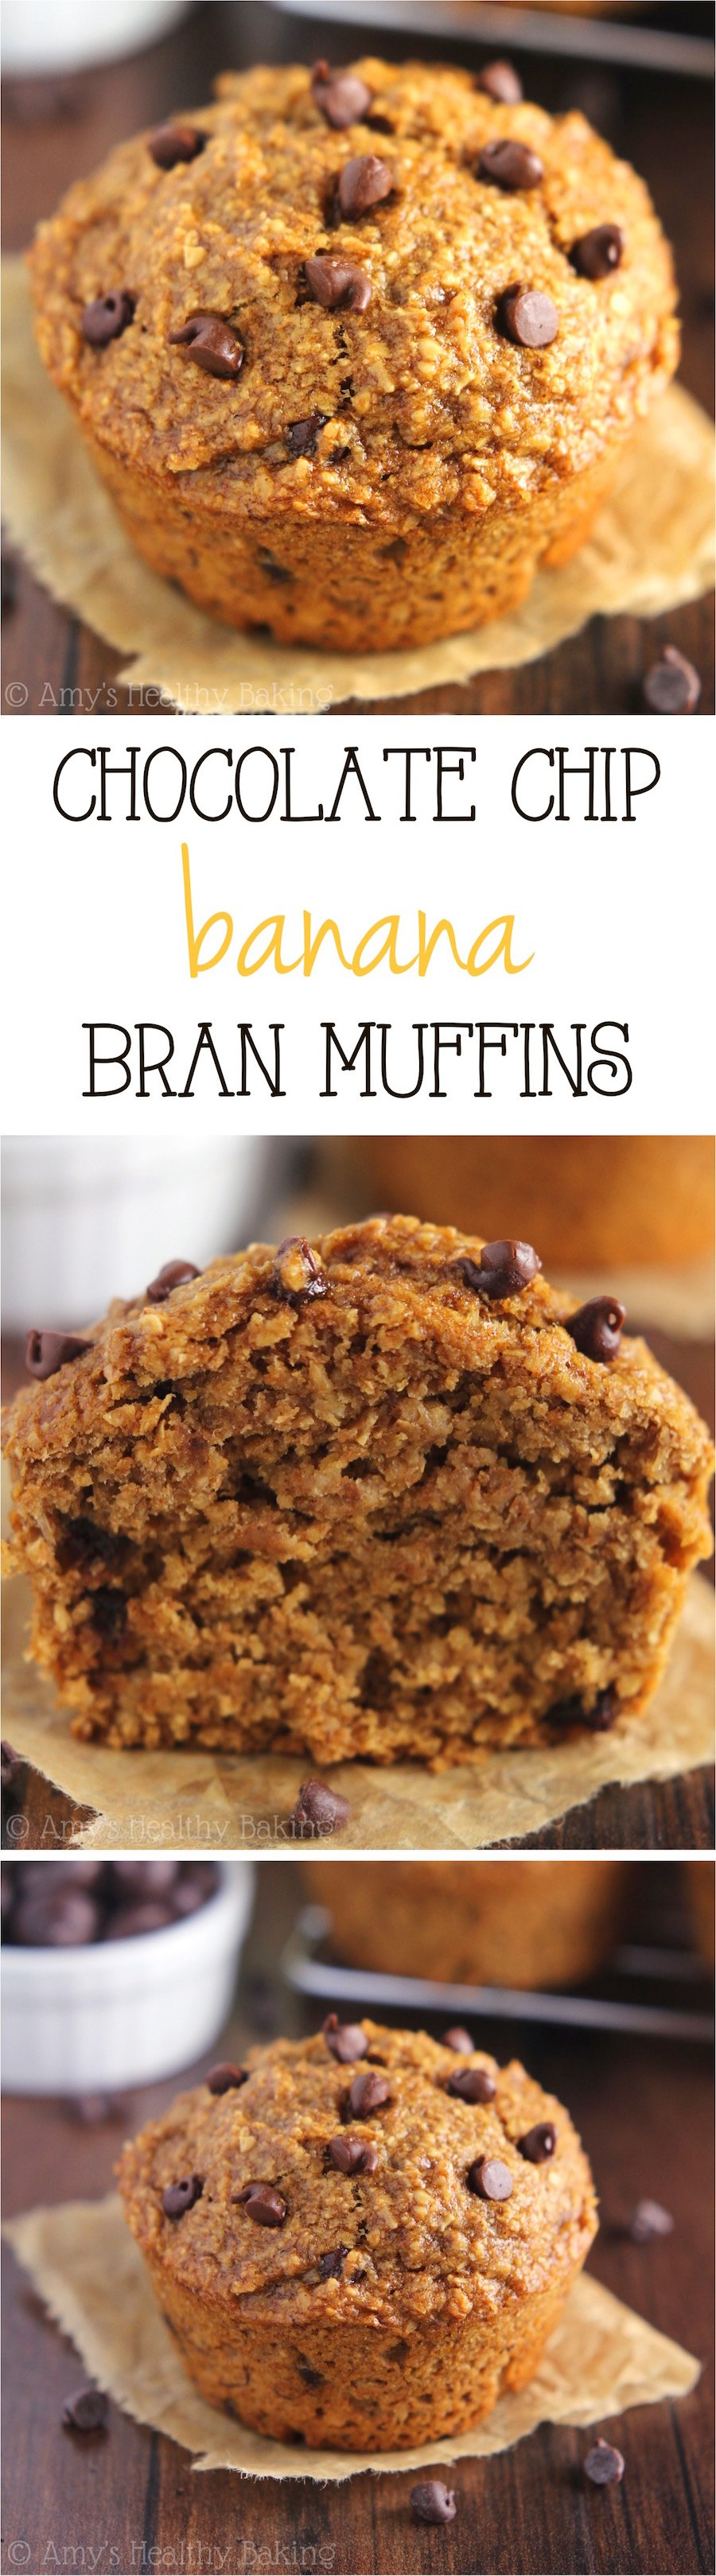 Chocolate Chip Banana Bran Muffins -- an easy, no-fuss recipe for the moistest bran muffins you'll ever eat! Full of chocolate & still really healthy!